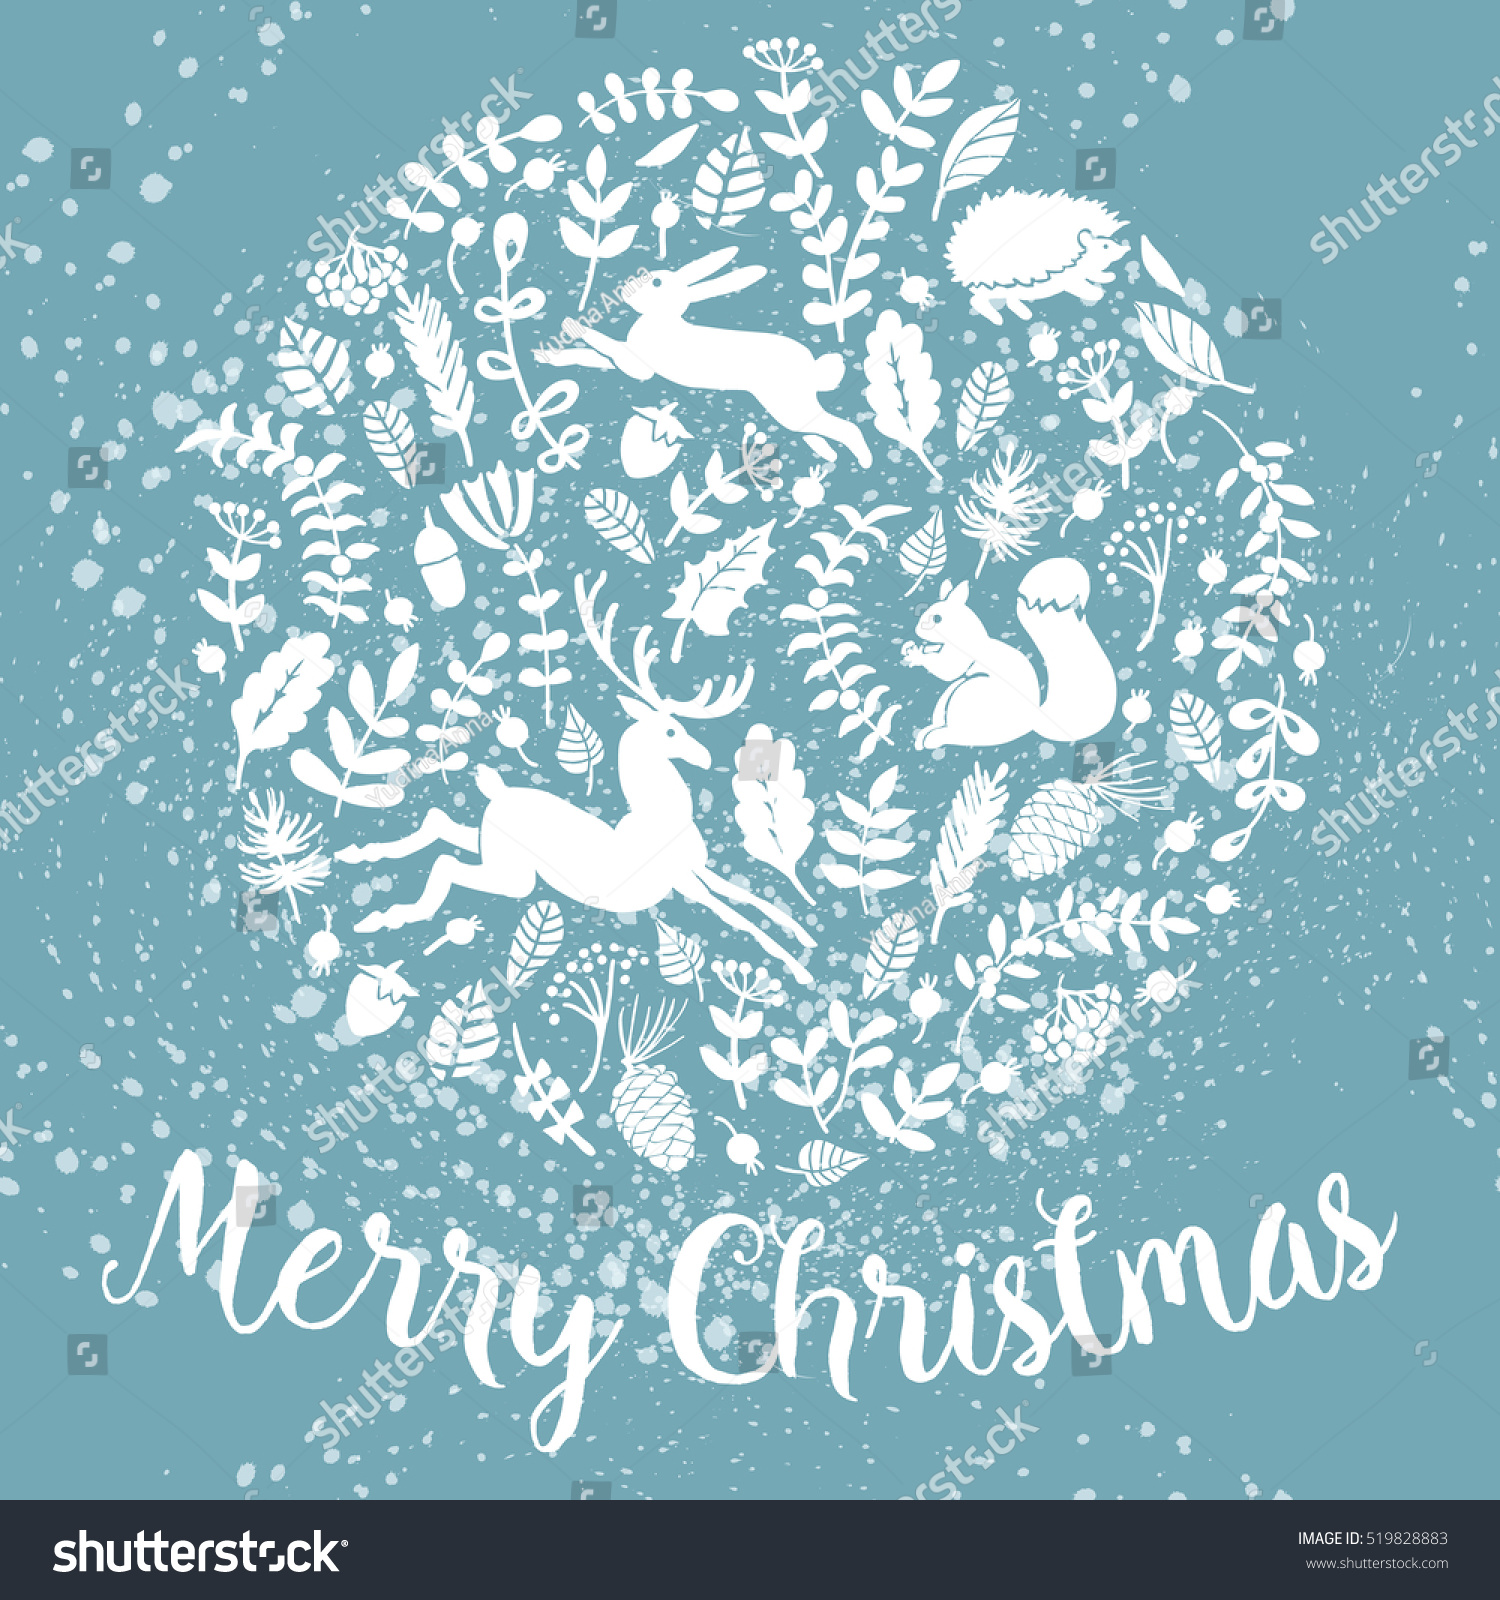 Snowy Christmas Card Illustration Greeting Cards Stock Vector